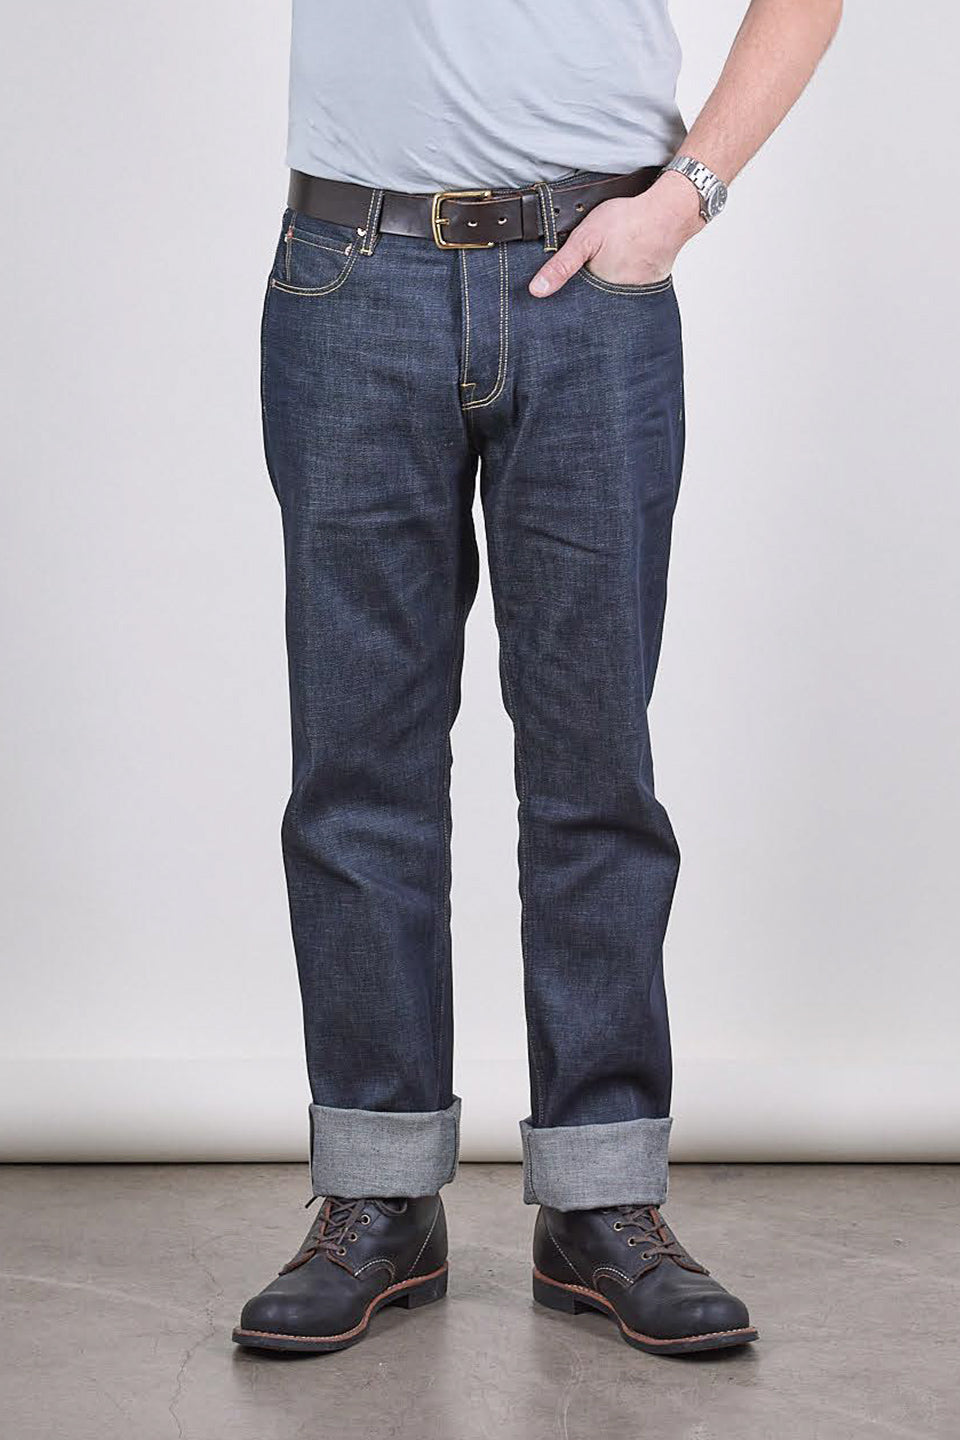 NW1 Relaxed Straight Indigo 14oz Turkish Raw Selvedge Mens